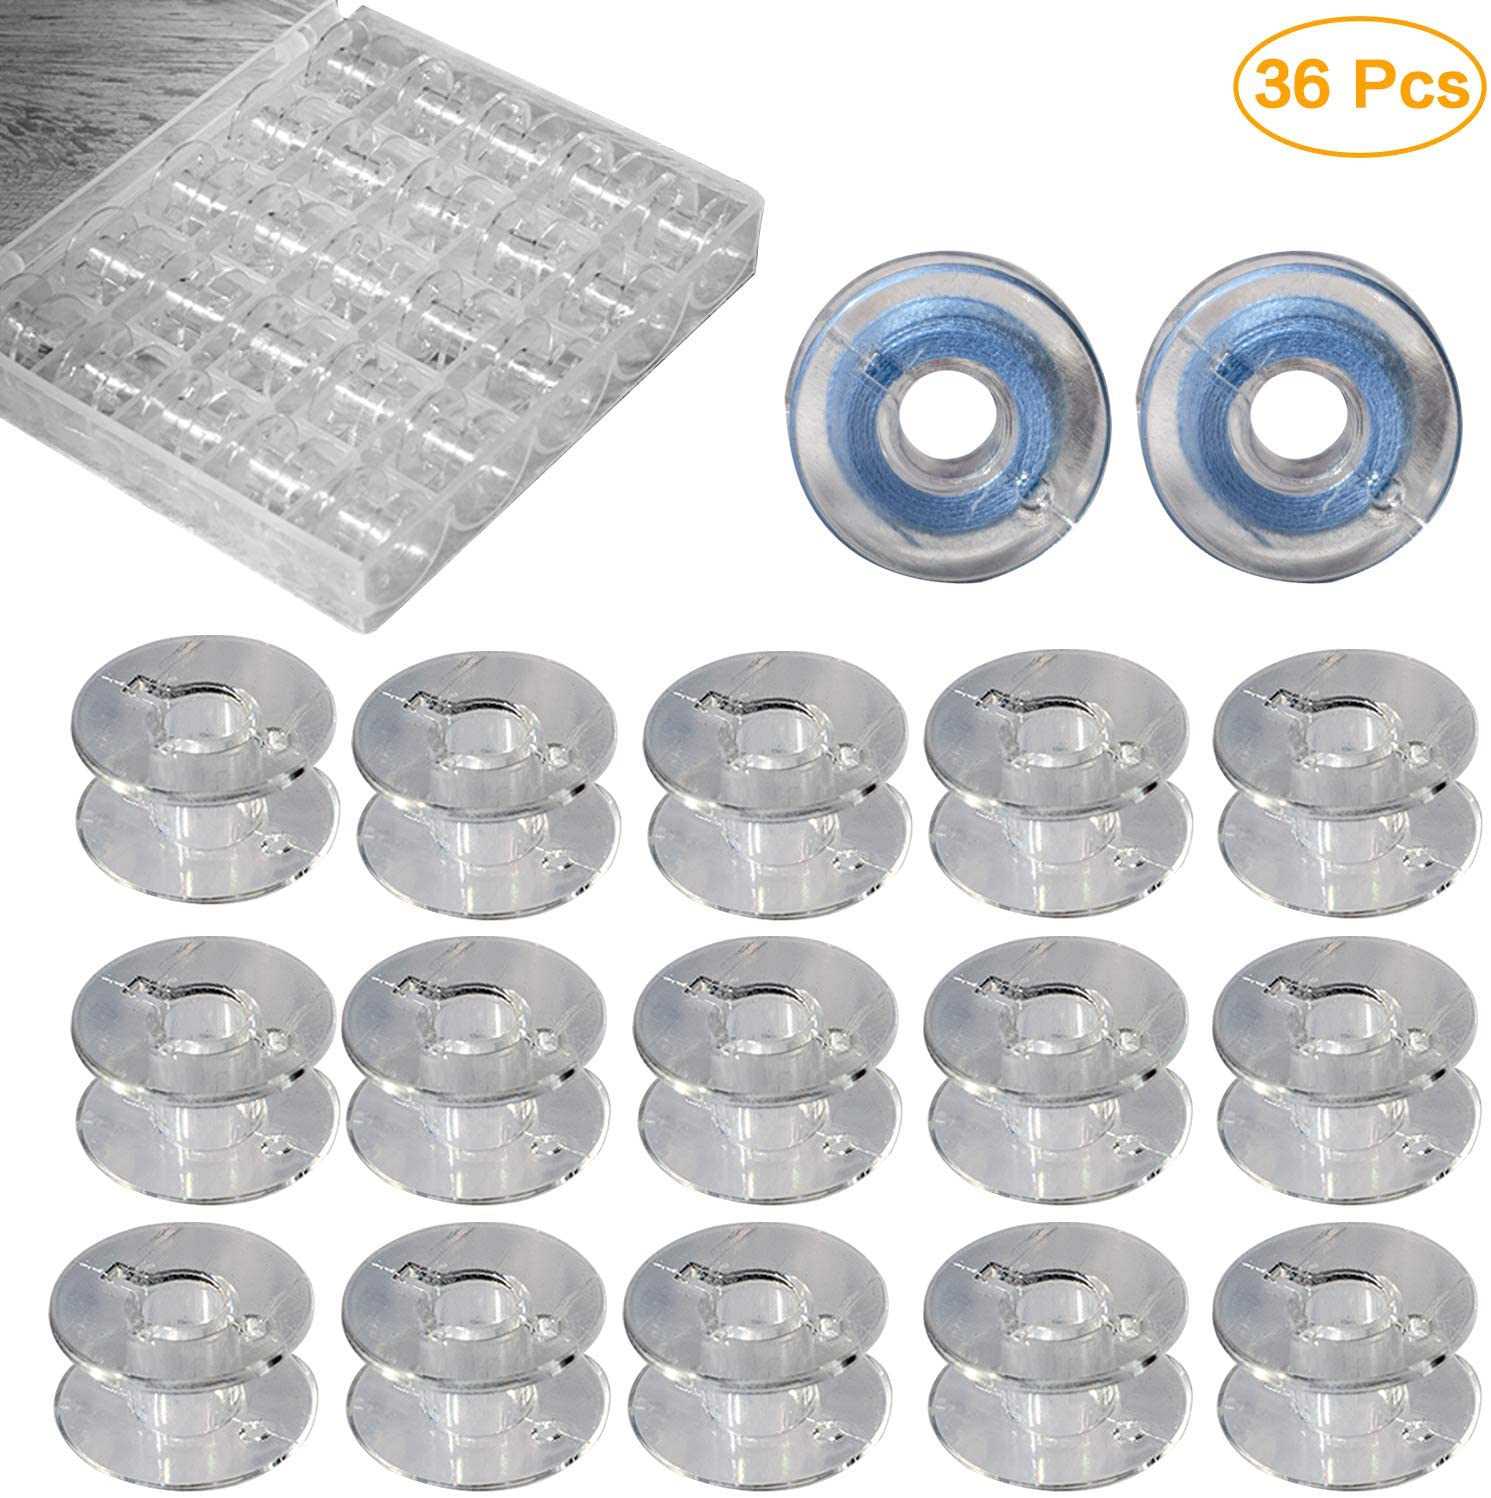 Vancool 36 Pcs Transparent Plastic Sewing Machine Bobbins with Case for Brother